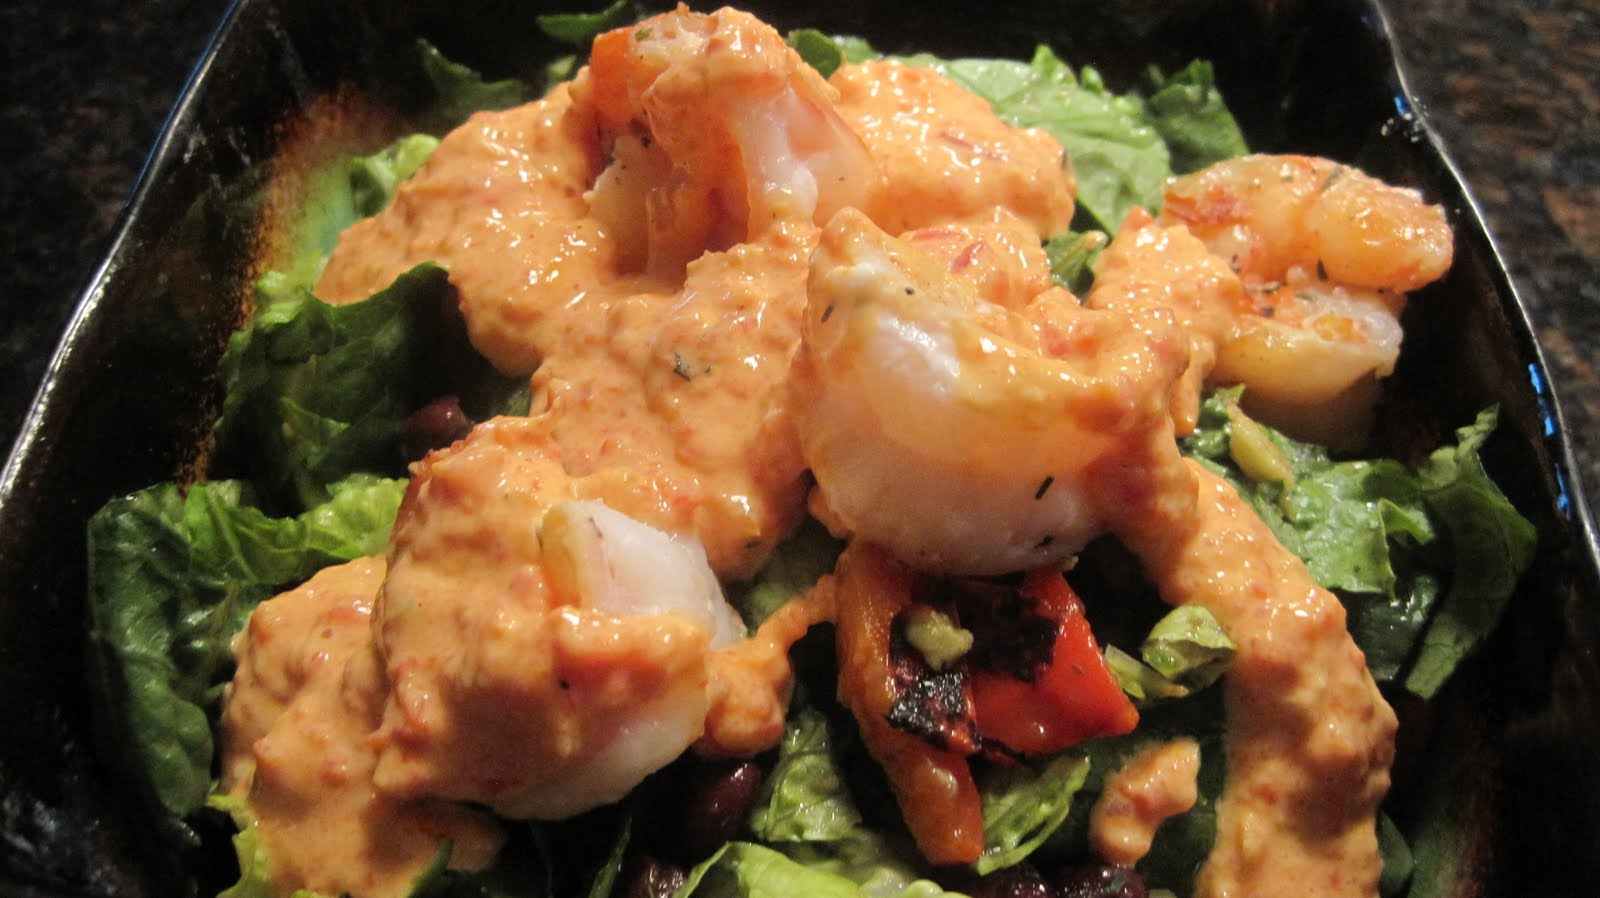 avocados recipe shrimps and avocado salad tomato and avocado shrimp ...